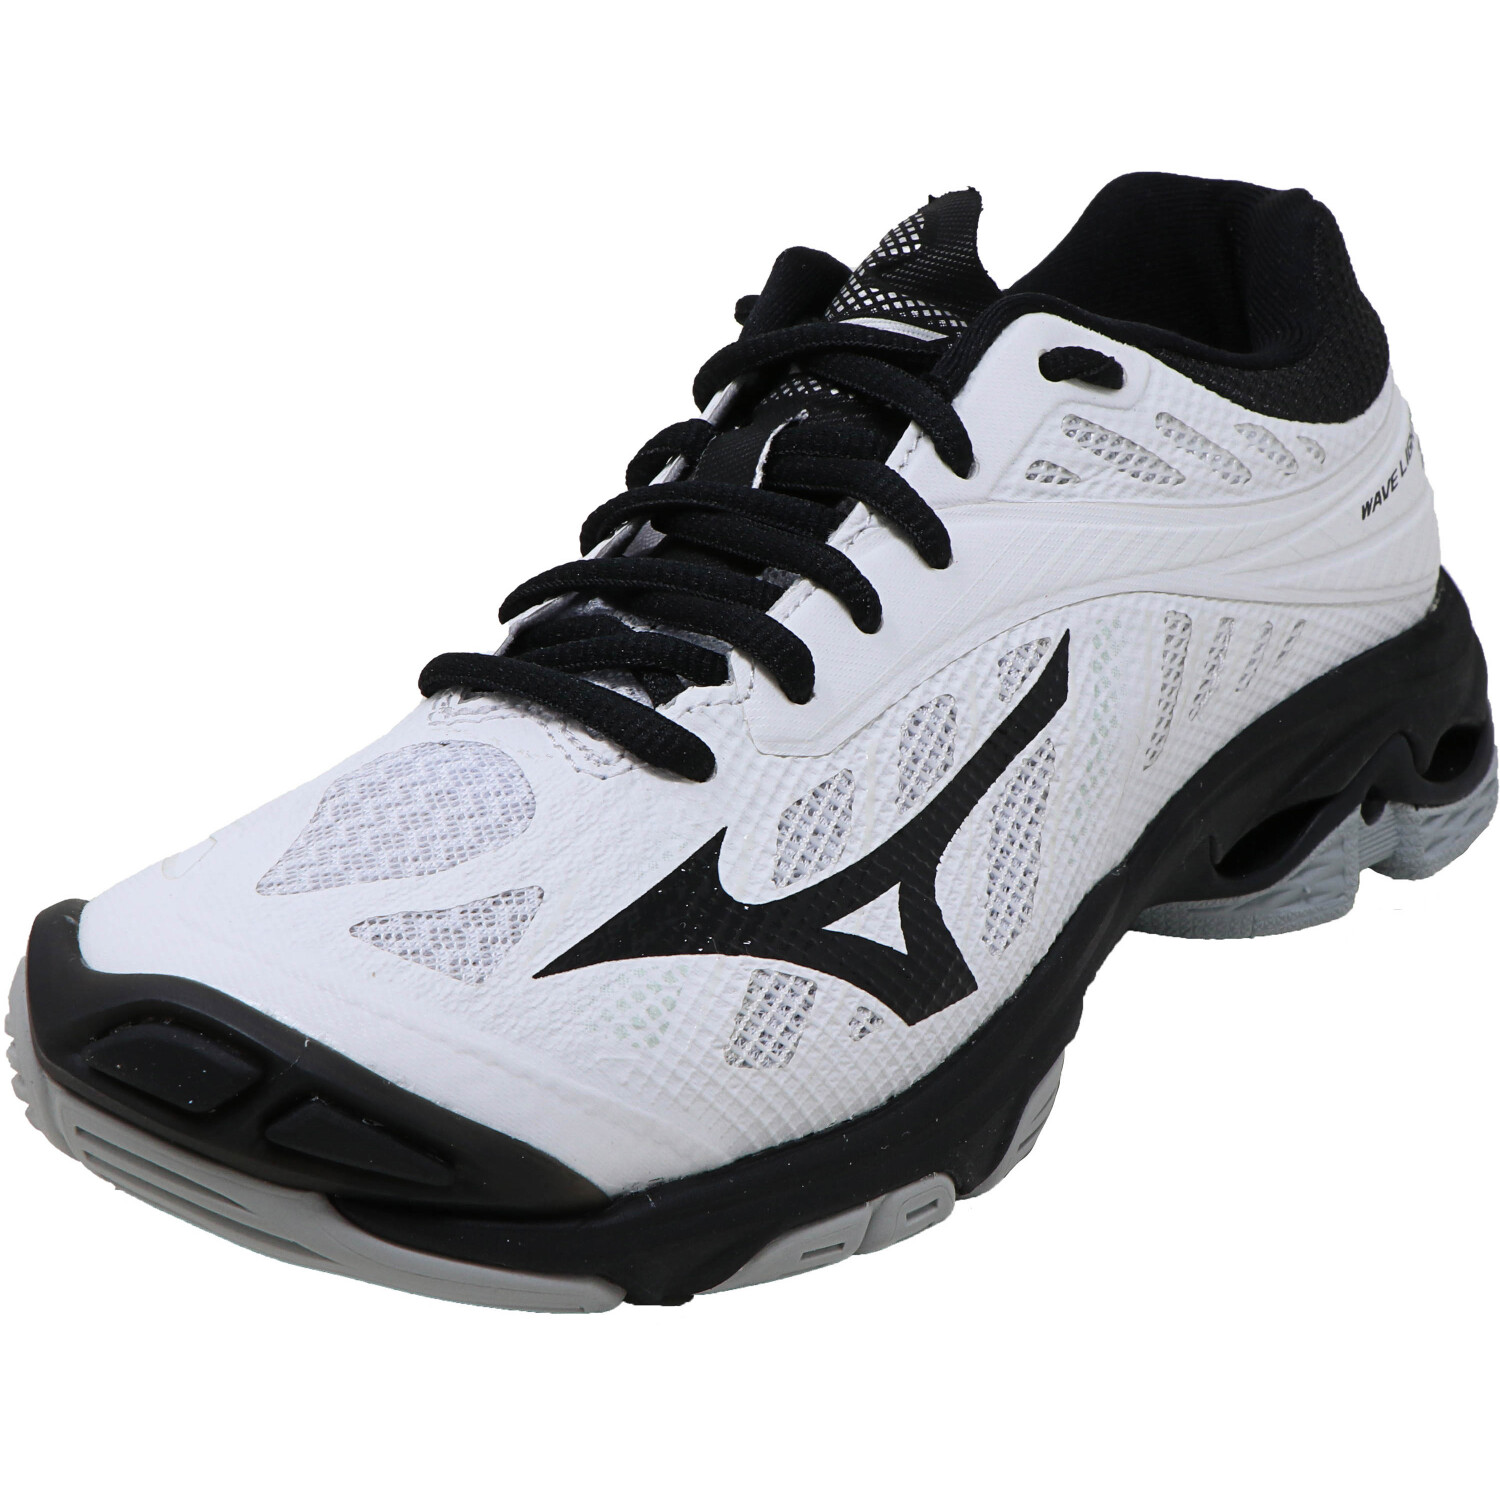 Mizuno Wave Lightning Z4 Volleyball Shoe for Women - 7M - White / Navy / Black